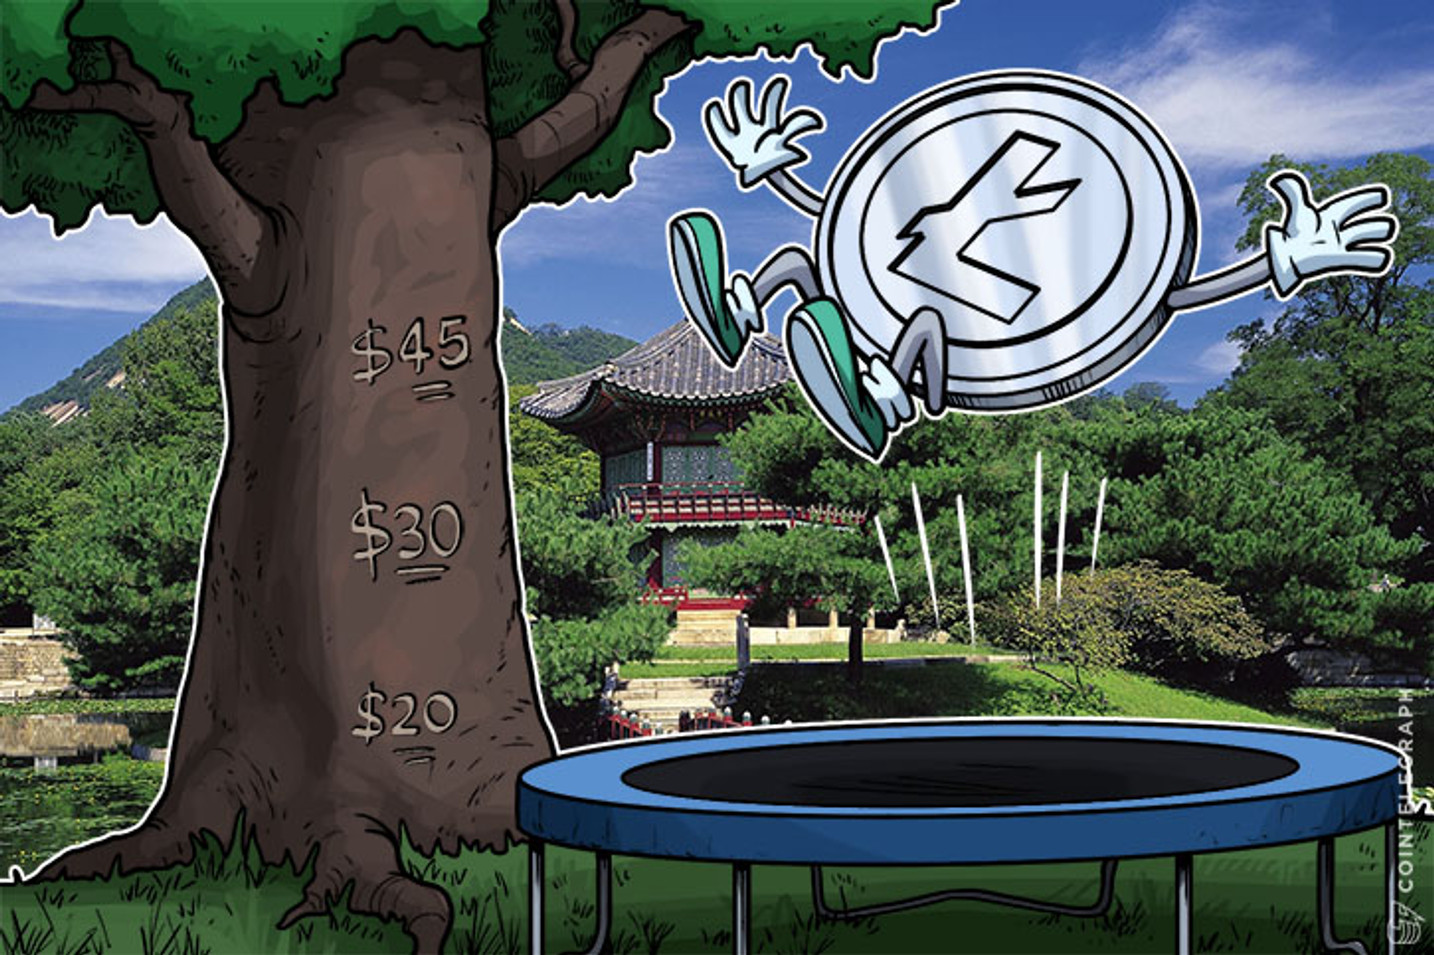 Litecoin Sustains Price Rise, Posts More Than $1 Bln of Trading Volume in Early July 2017